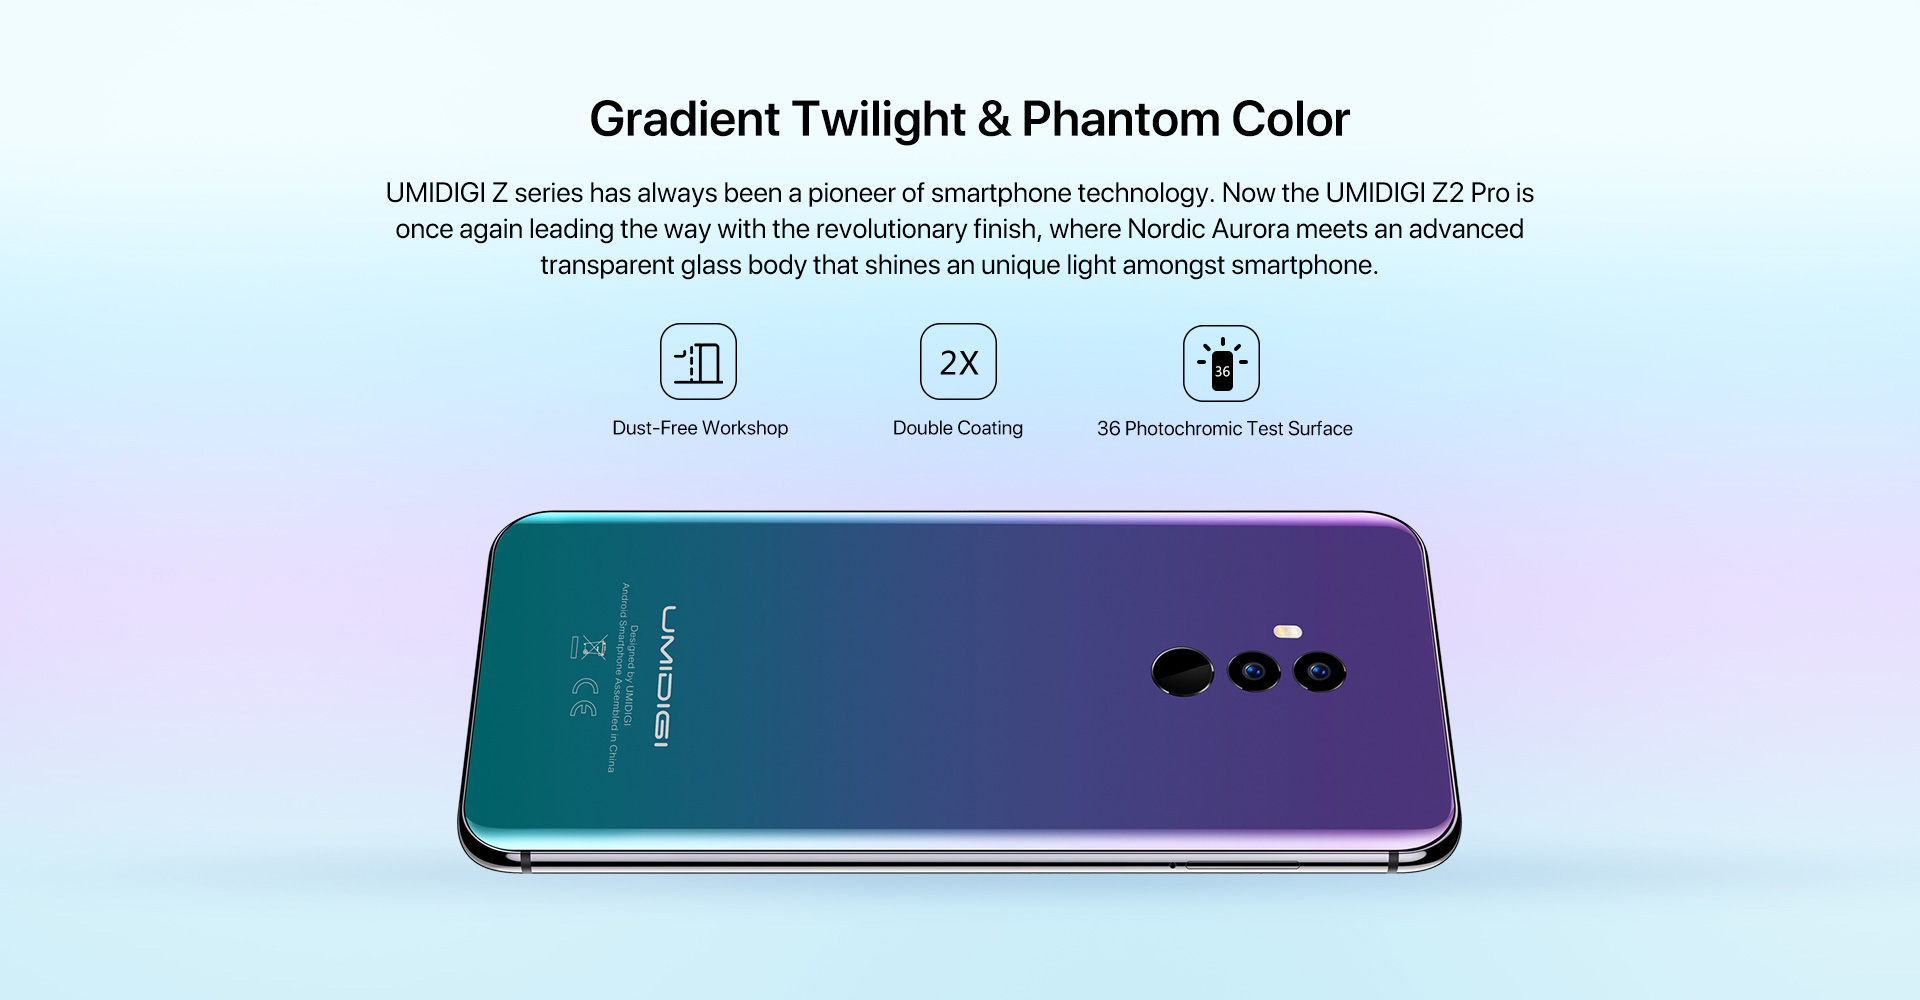 UMIDIGI Z2 PRO 4G Phablet 6.2 inch Android 8.1 Helio P60 Octa Core 2.0GHz 6GB RAM 128GB ROM 3550mAh Battery Quad Cameras Fingerprint Recognition Type-C- Twilight